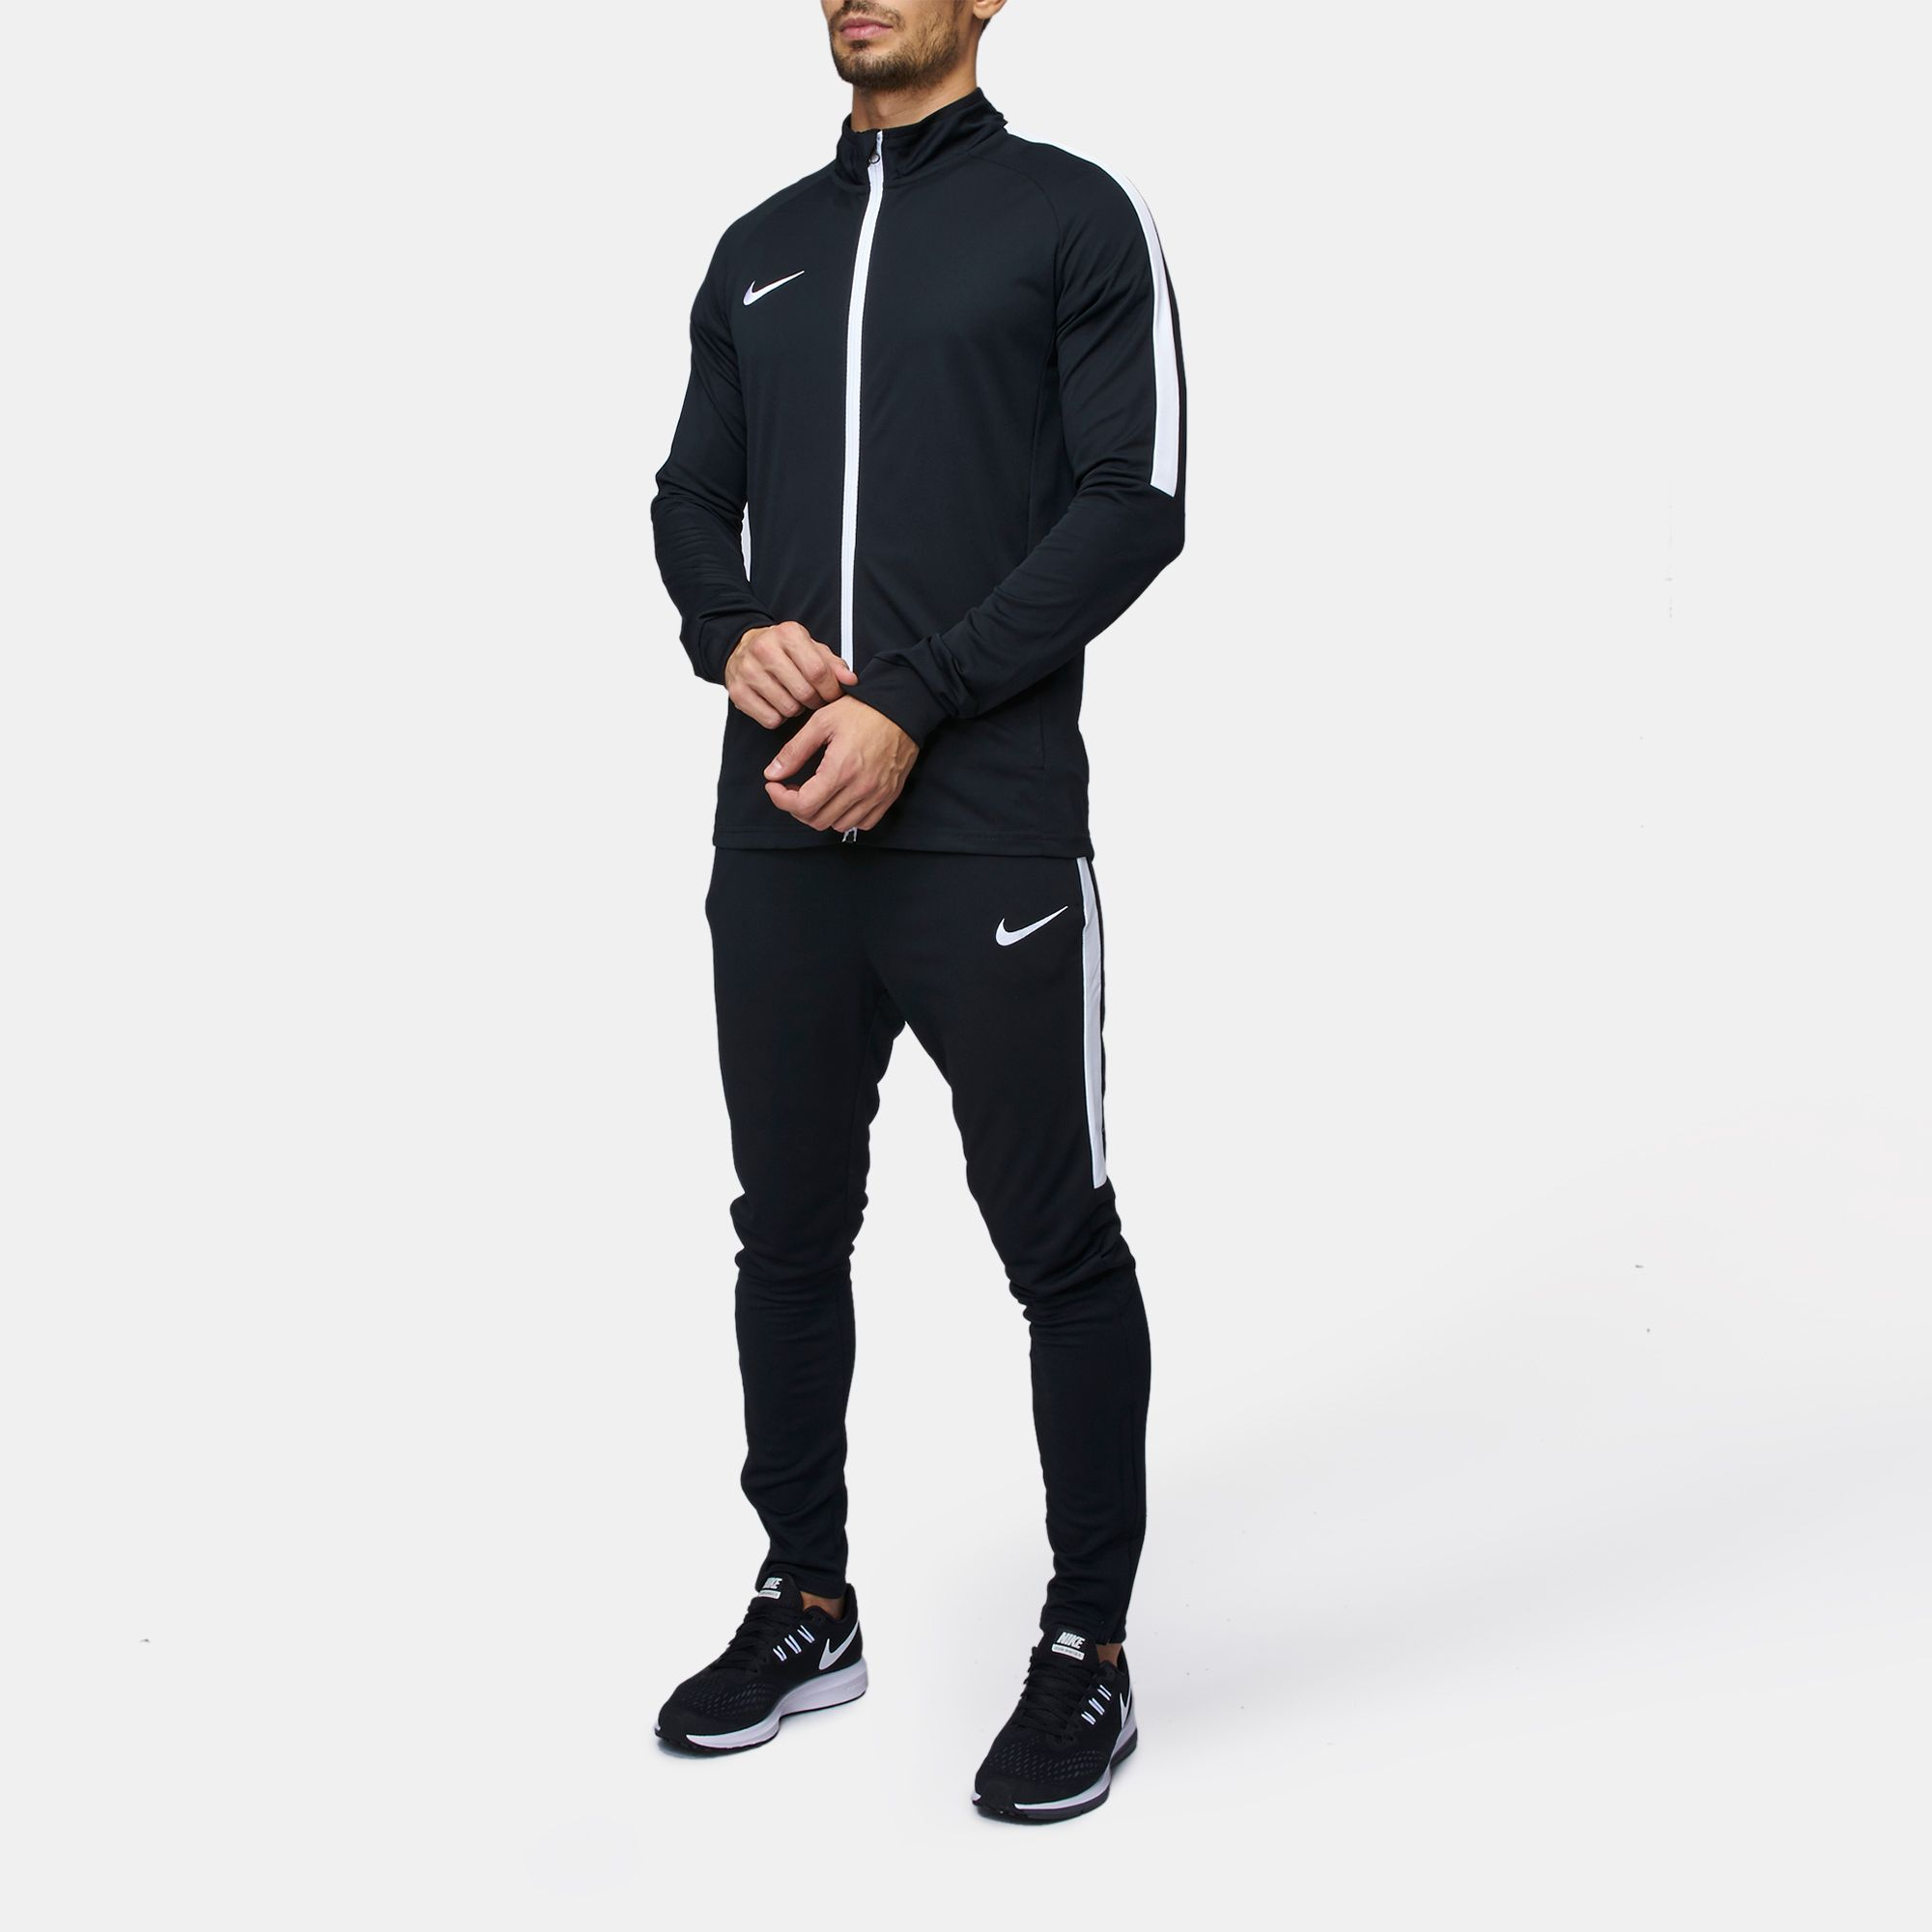 5d728a59714a Nike academy football tracksuit tracksuits clothing mens jpg 2000x2000 Nike  football towls